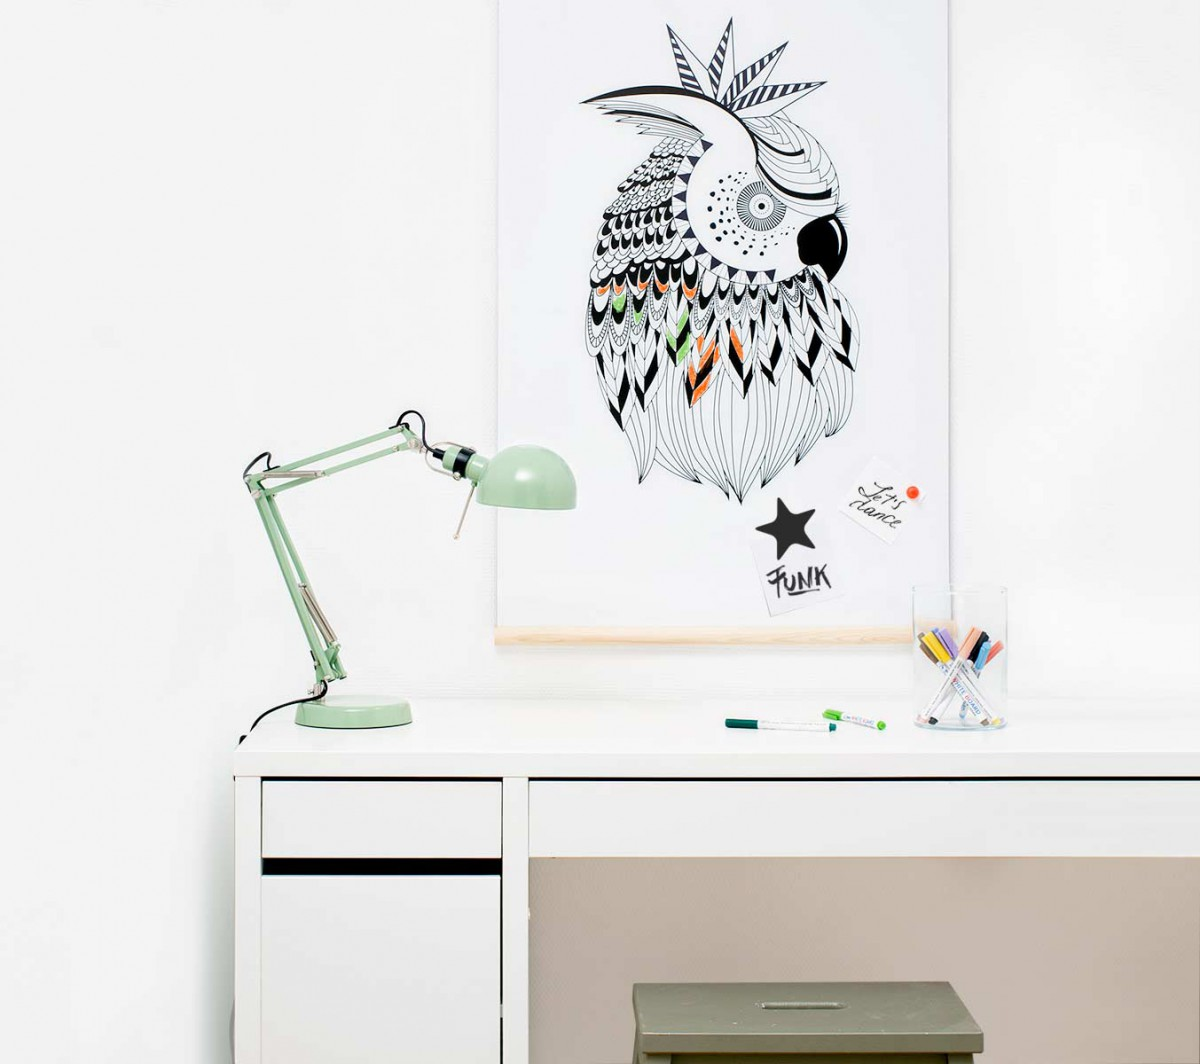 magnetisch whiteboard ikea awesome standtafel kinder tafel maltafel magnettafel lerntafel. Black Bedroom Furniture Sets. Home Design Ideas